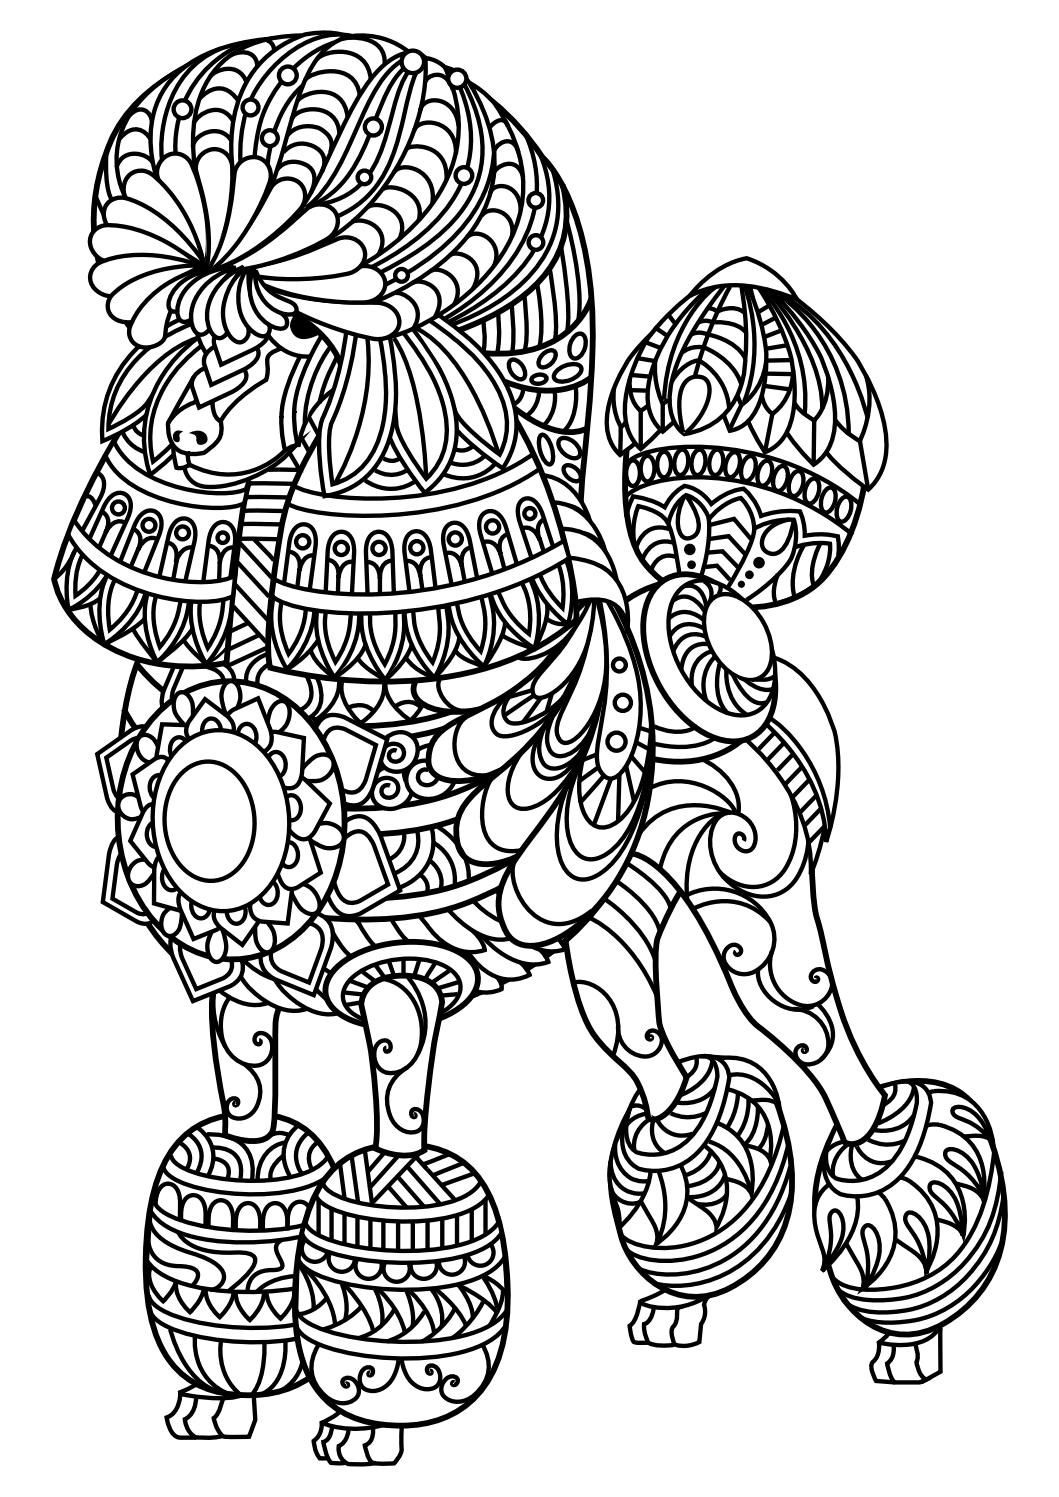 It's just a graphic of Punchy Adult Coloring Book Pdf